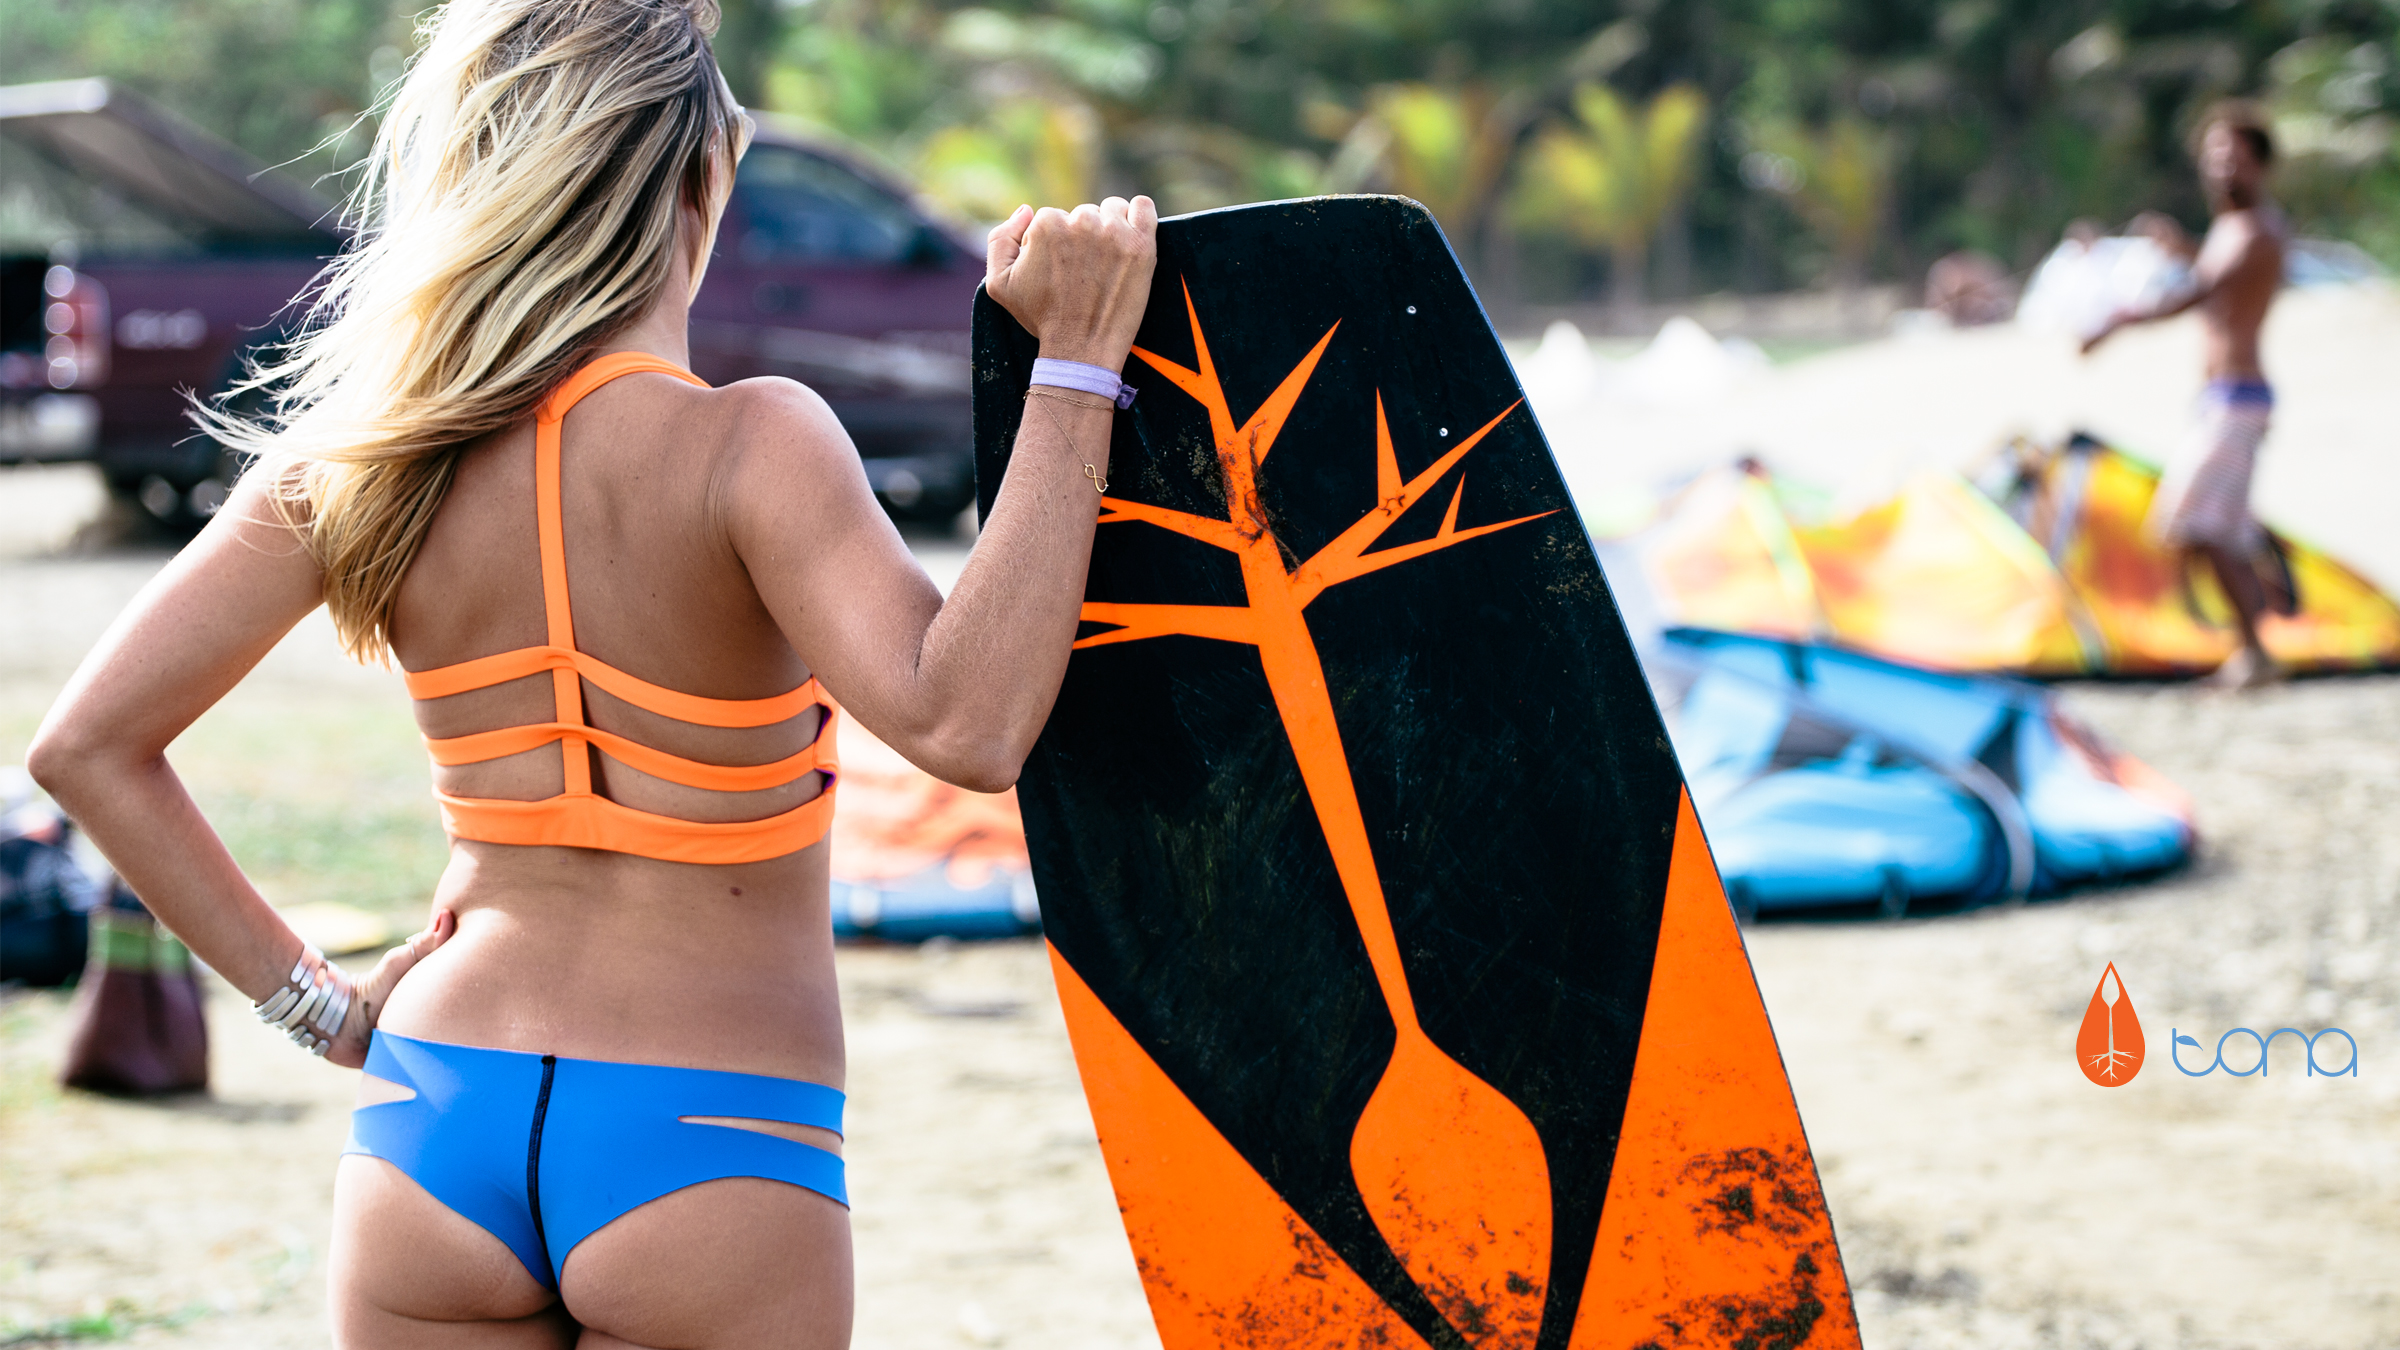 kitesurf wallpaper image - Susi Mai getting into the flow of Tona Boards posing with kiteboard - in resolution: High Definition - HD 16:9 2400 X 1350